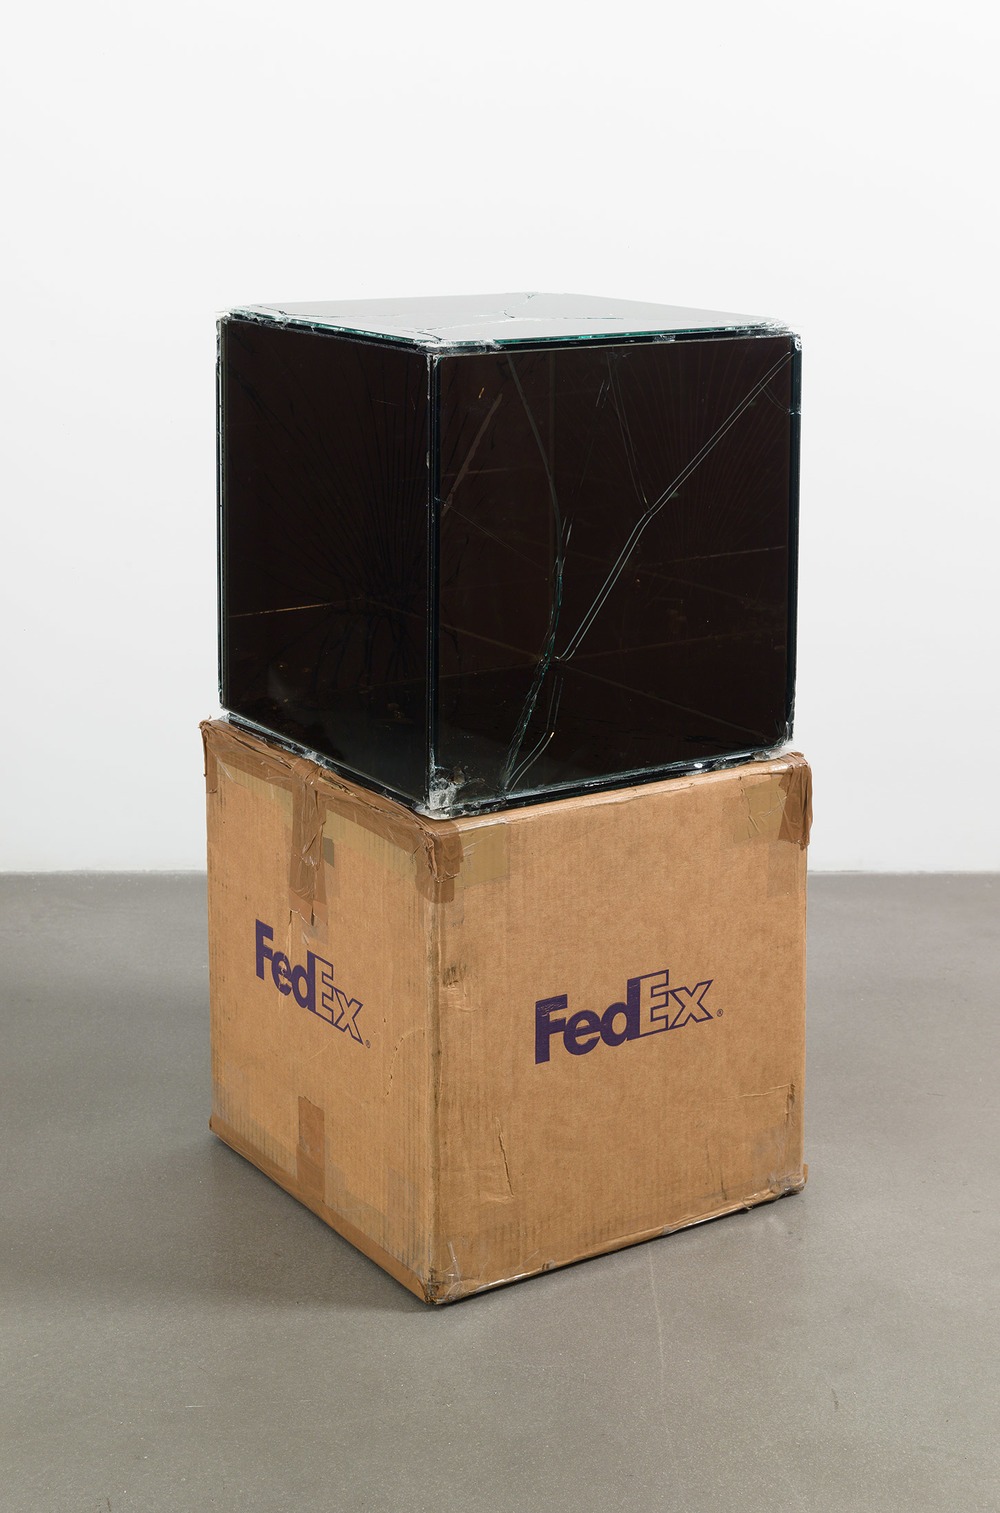 FedEx Kraft Box 2005 FEDEX 330504 10/05 SSCC, Priority Overnight, Los Angeles–Miami trk#865344981303, October 29–30, 2008, Priority Overnight, Miami–Ann Arbor trk#861049125148, March 3–4, 2009, Standard Overnight, Ann Arbor–Los Angeles trk#868274625716, July 9–10, 2009, Standard Overnight, Los Angeles–New York trk# 774901718297, November 4–5, 2015, Standard Overnight, New York–Los Angeles trk#775241156204, December 21–22, 2015    2008–   Laminated Mirropane, FedEx shipping box, accrued FedEx shipping and tracking labels, silicone, metal, tape  16 x 16 x 16 inches   Pulleys, Cogwheels, Mirrors, and Windows, 2009    Great Hall Exhibition, 2015